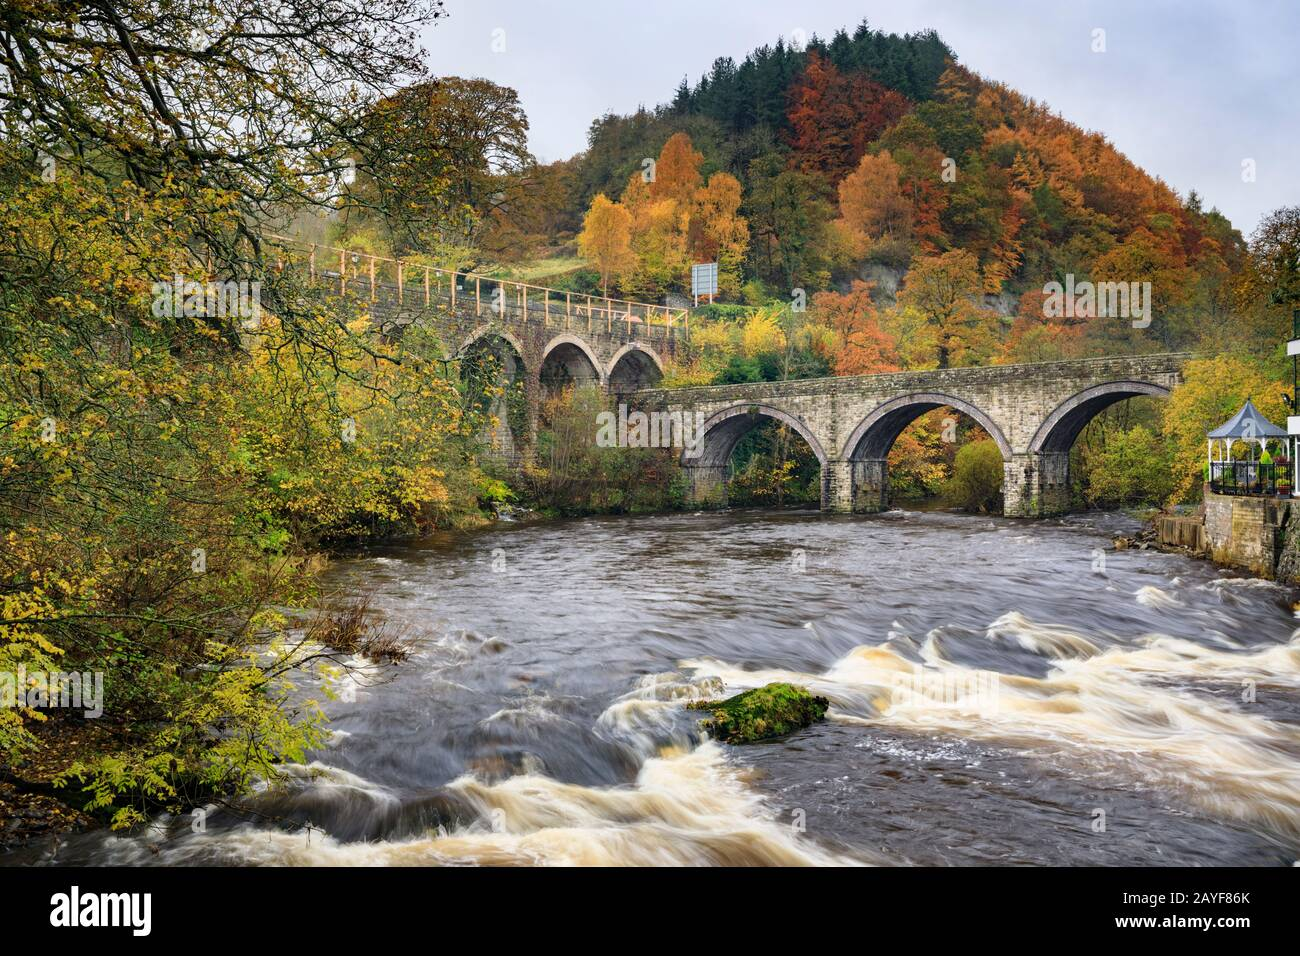 The River Dee at Berwyn Station in North Wales. Stock Photo